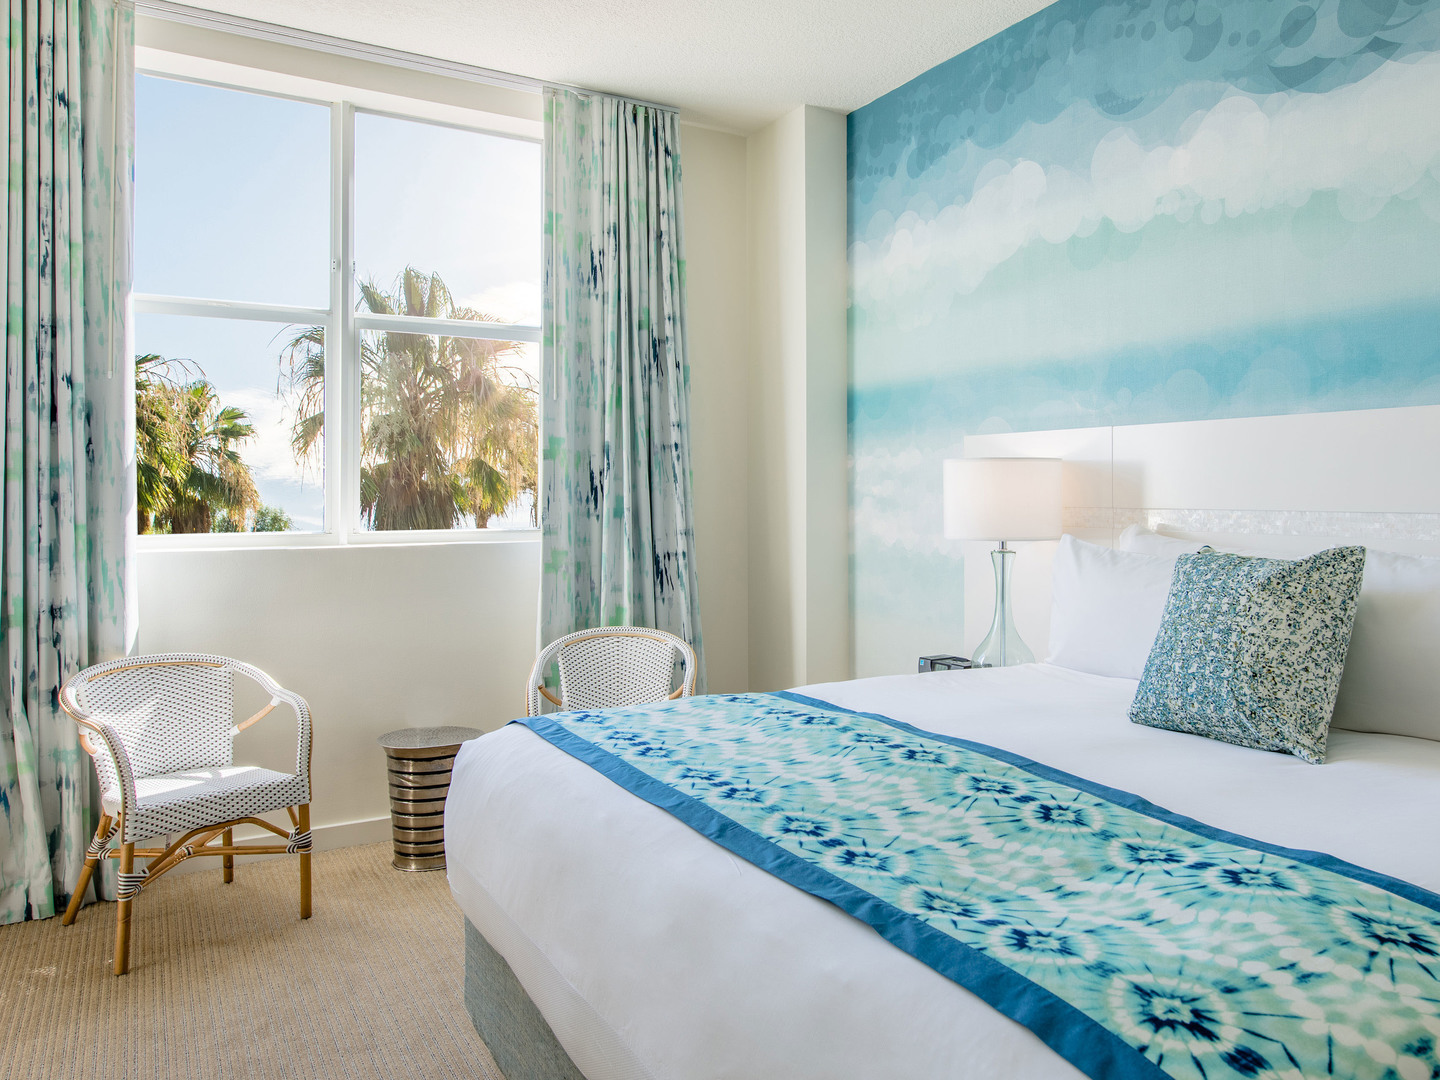 Marriott Vacation Club Pulse<span class='trademark'>®</span>, South Beach Guestroom. Marriott Vacation Club Pulse<span class='trademark'>®</span>, South Beach is located in Miami Beach, Florida United States.